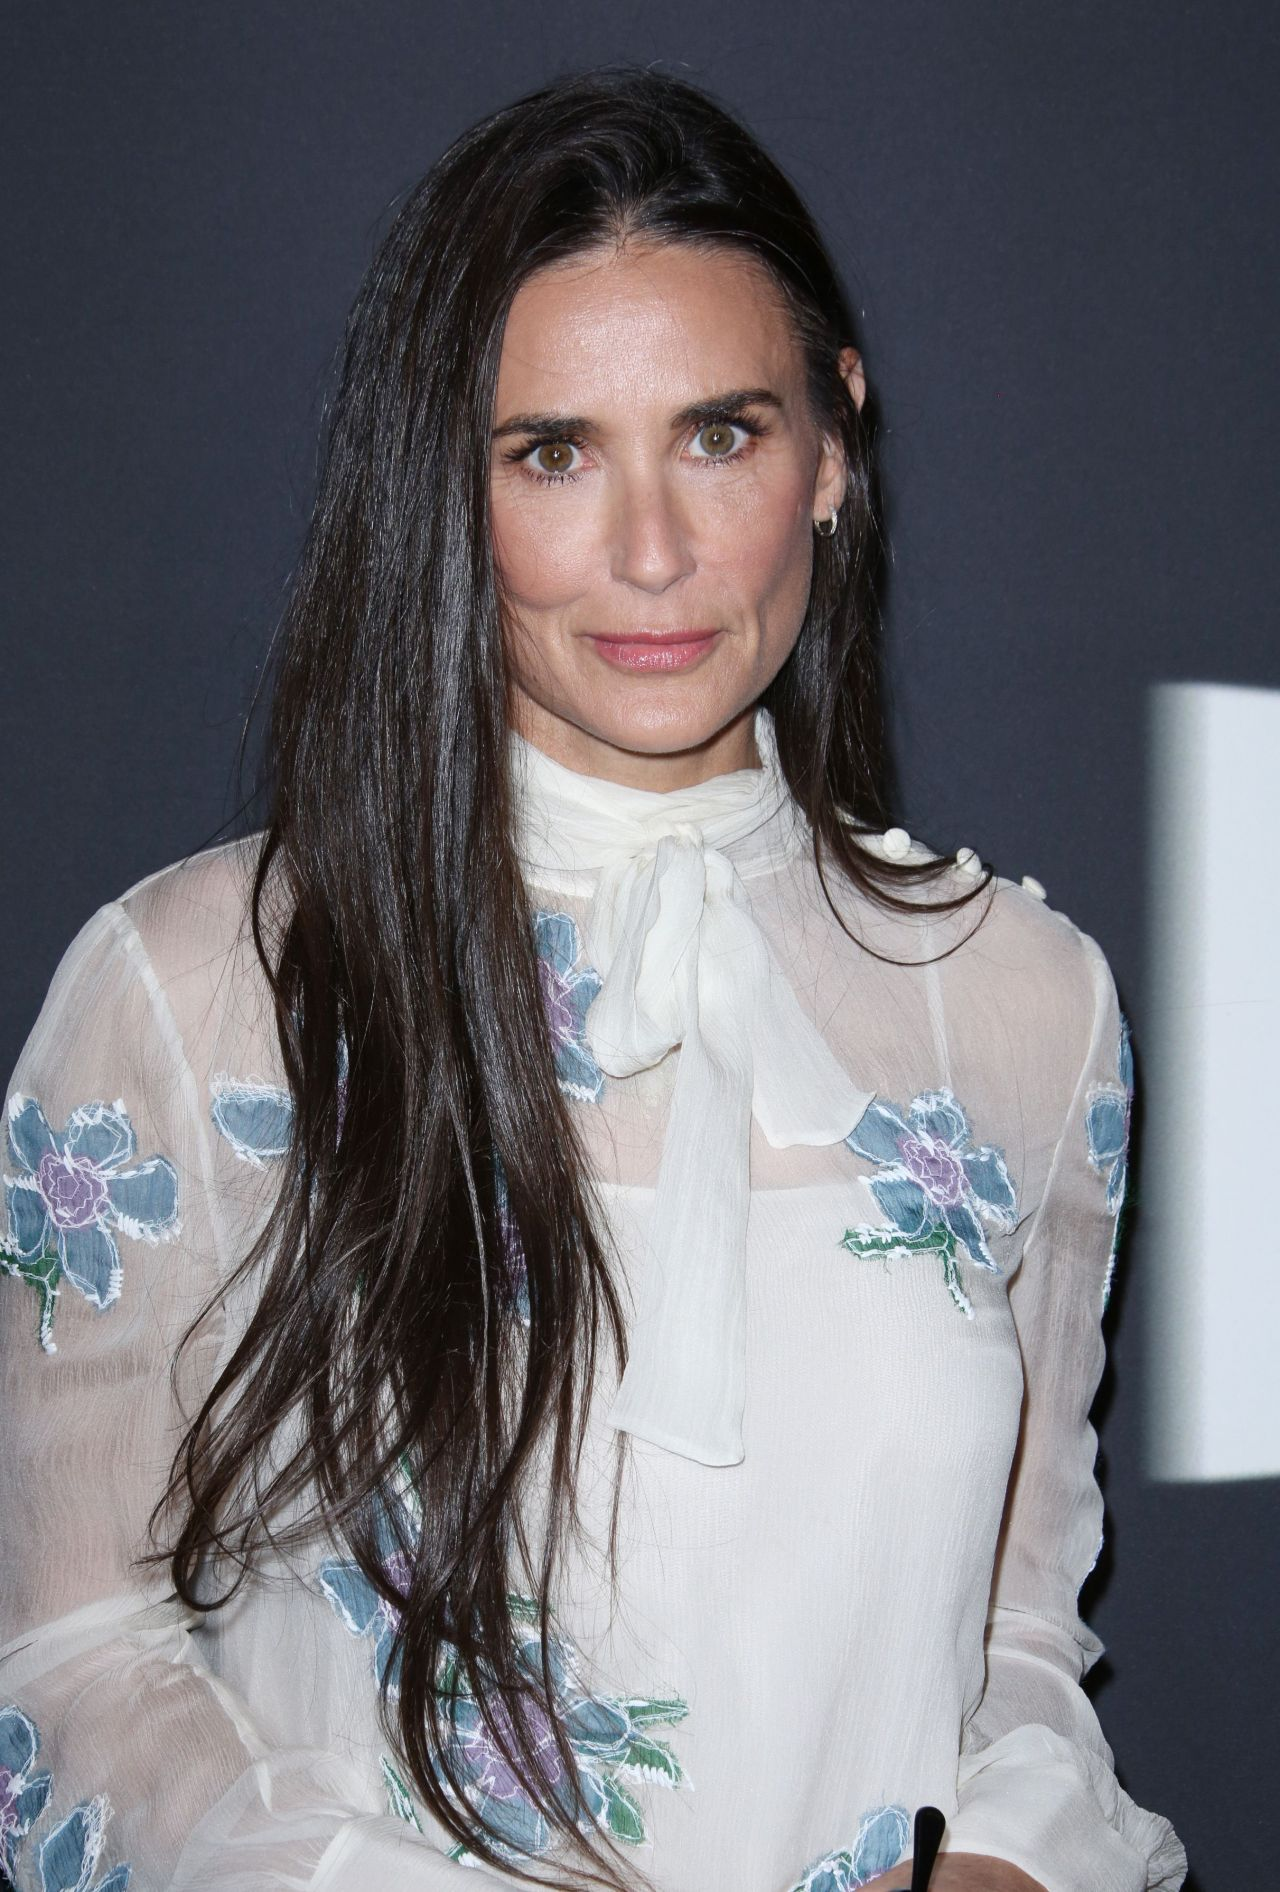 Yeah Demi moore for adding!!!